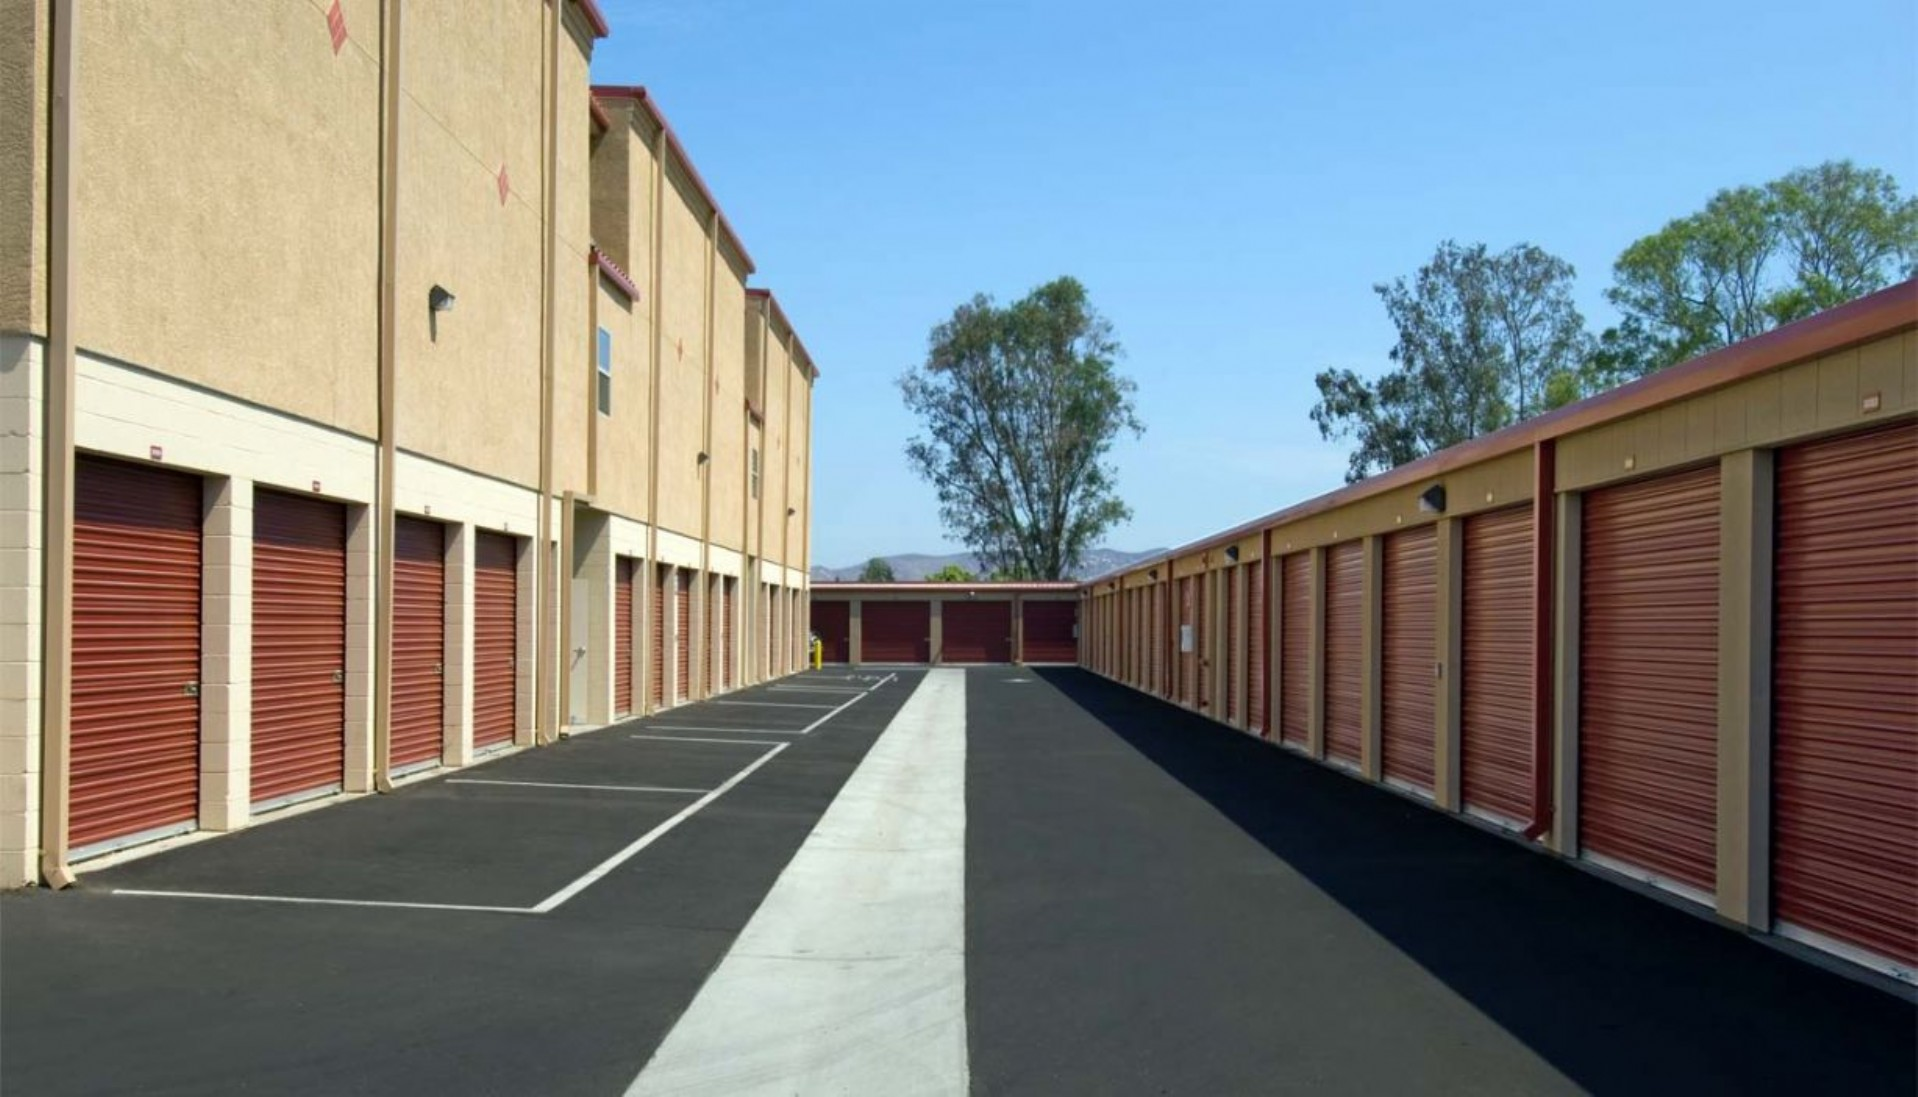 Drive aisle to ground floor large storage units with roll up doors